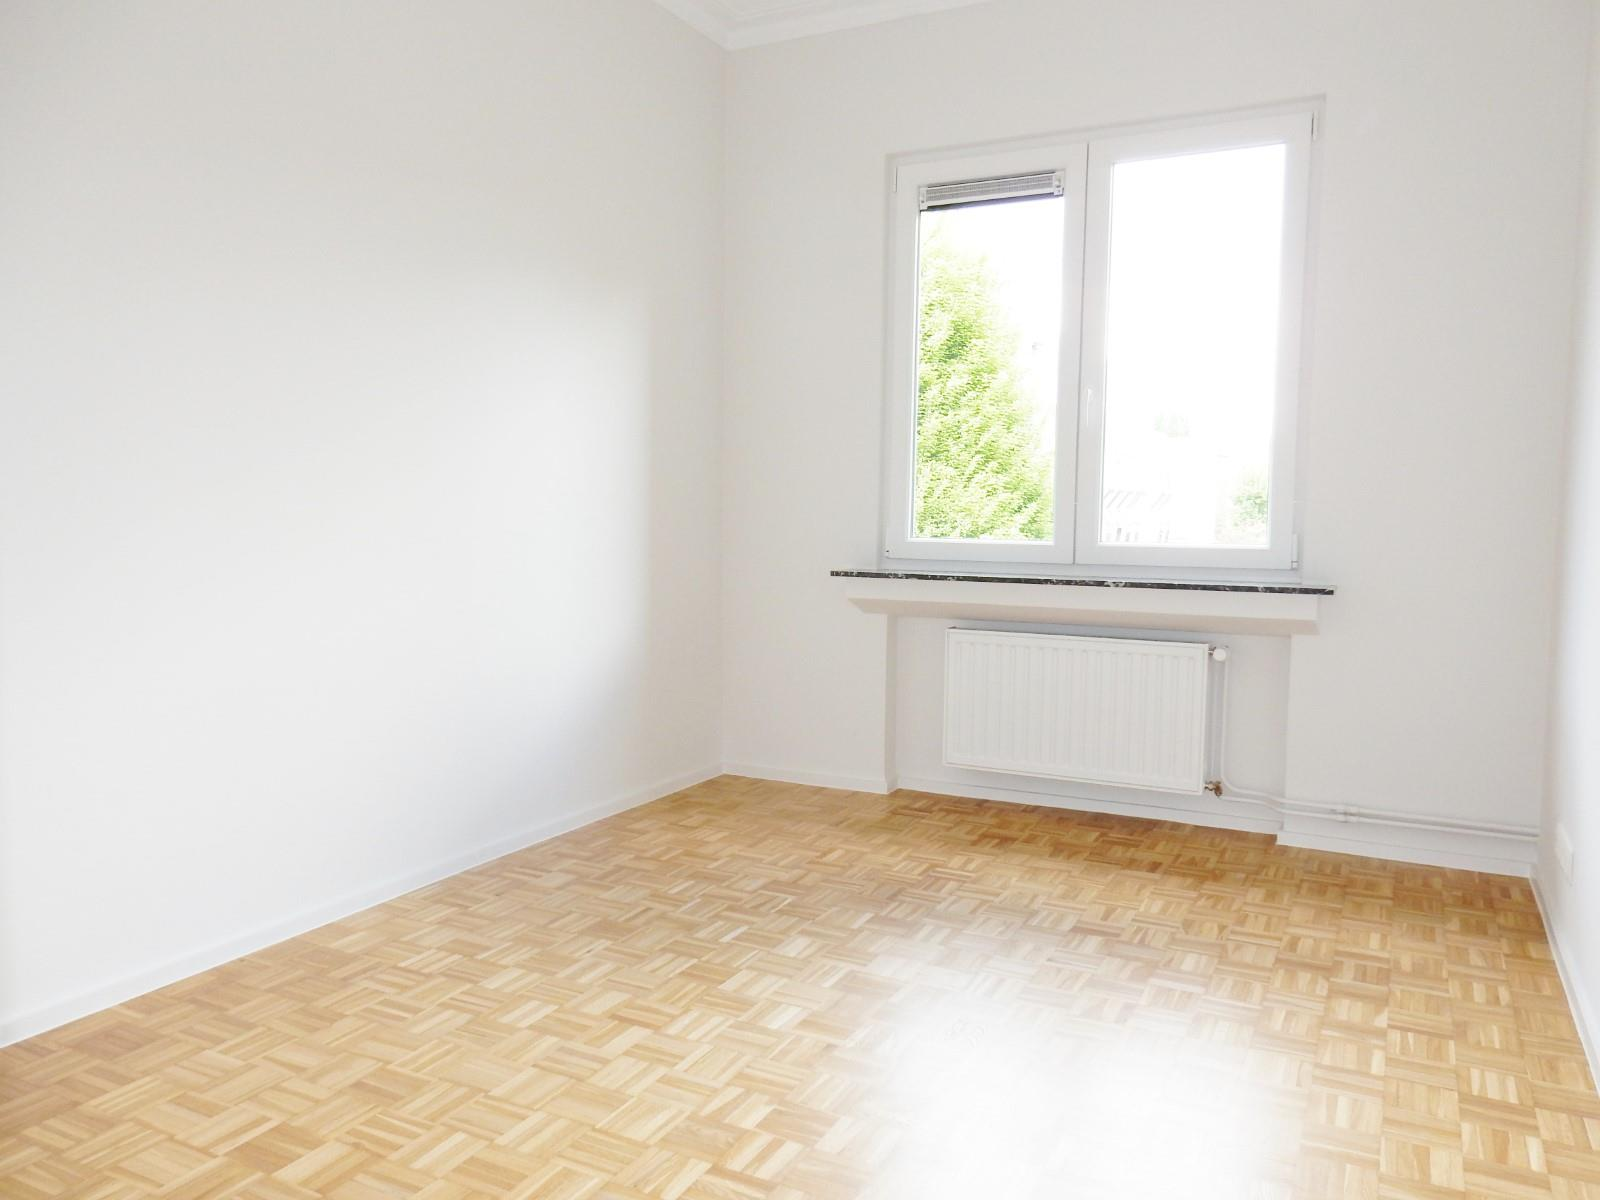 Appartement exceptionnel - Uccle - #3601428-8